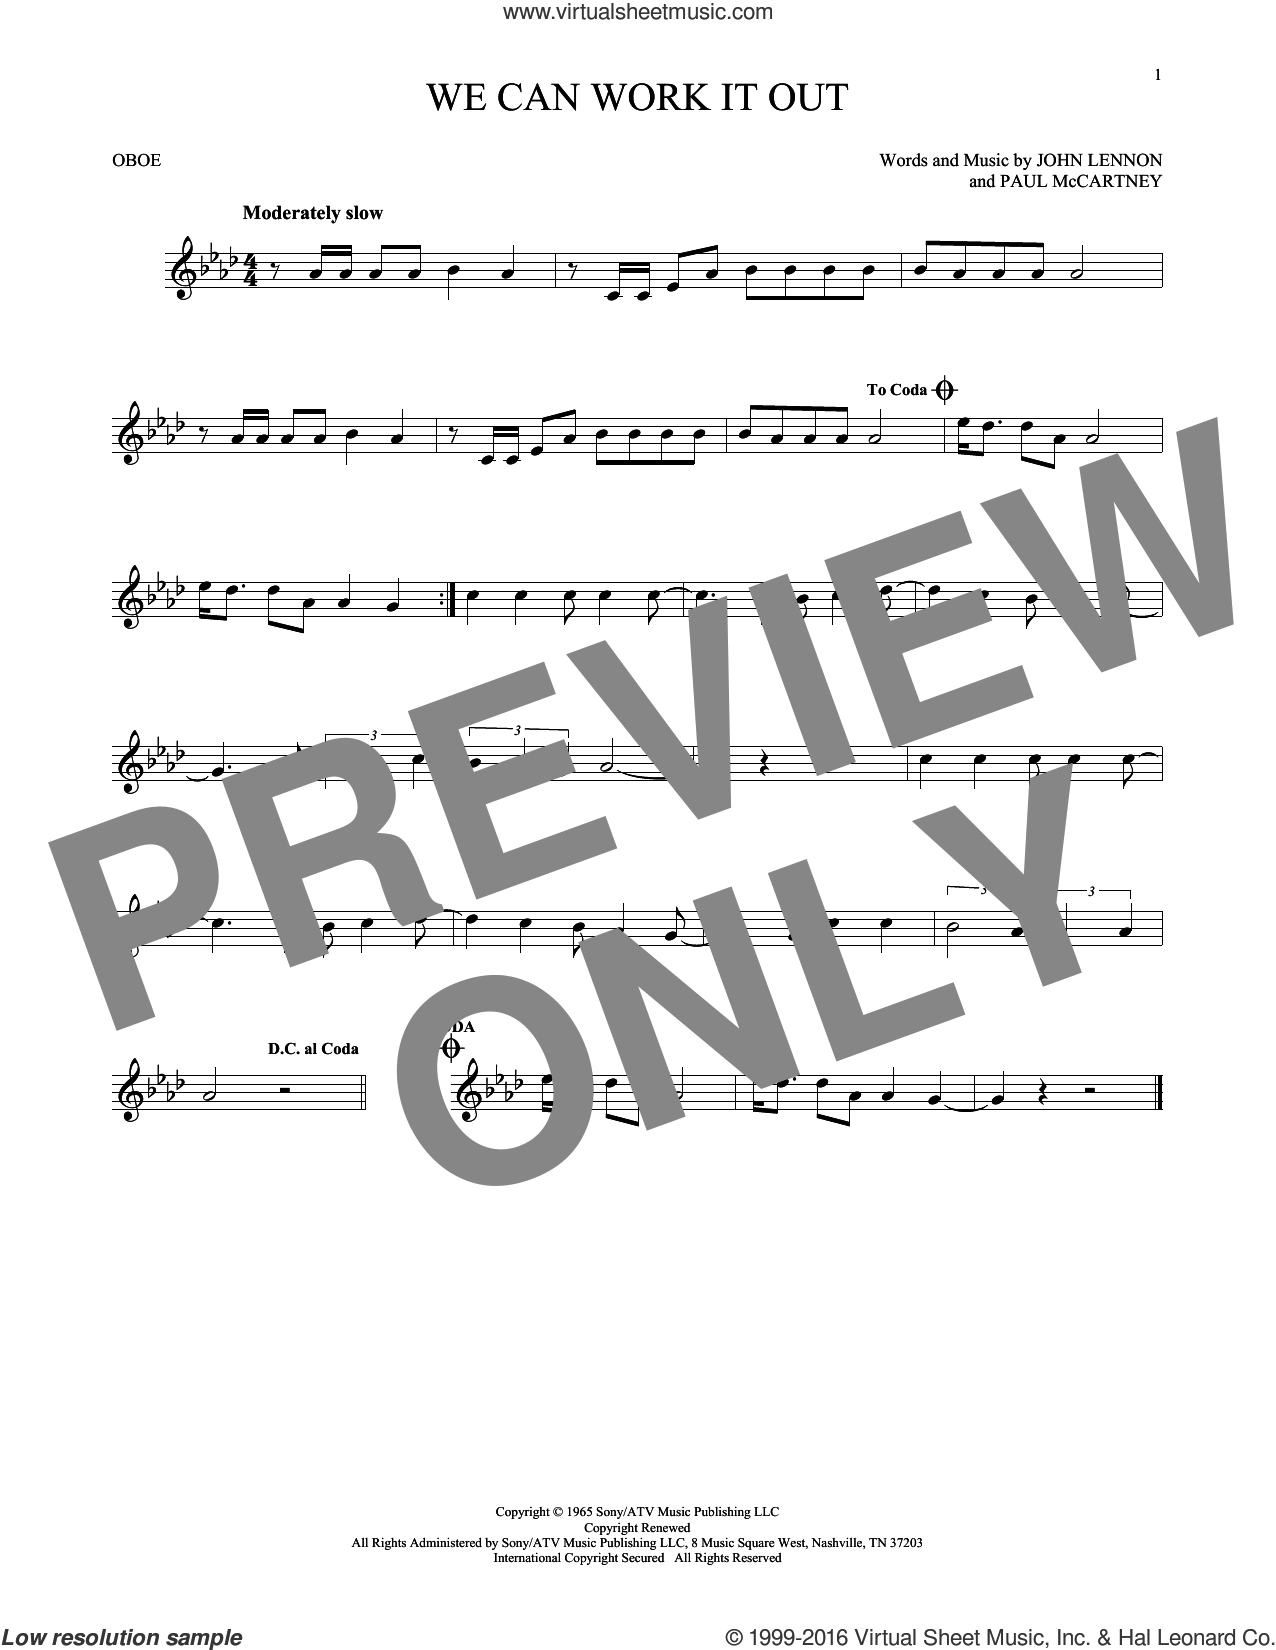 We Can Work It Out sheet music for oboe solo by The Beatles, John Lennon and Paul McCartney, intermediate